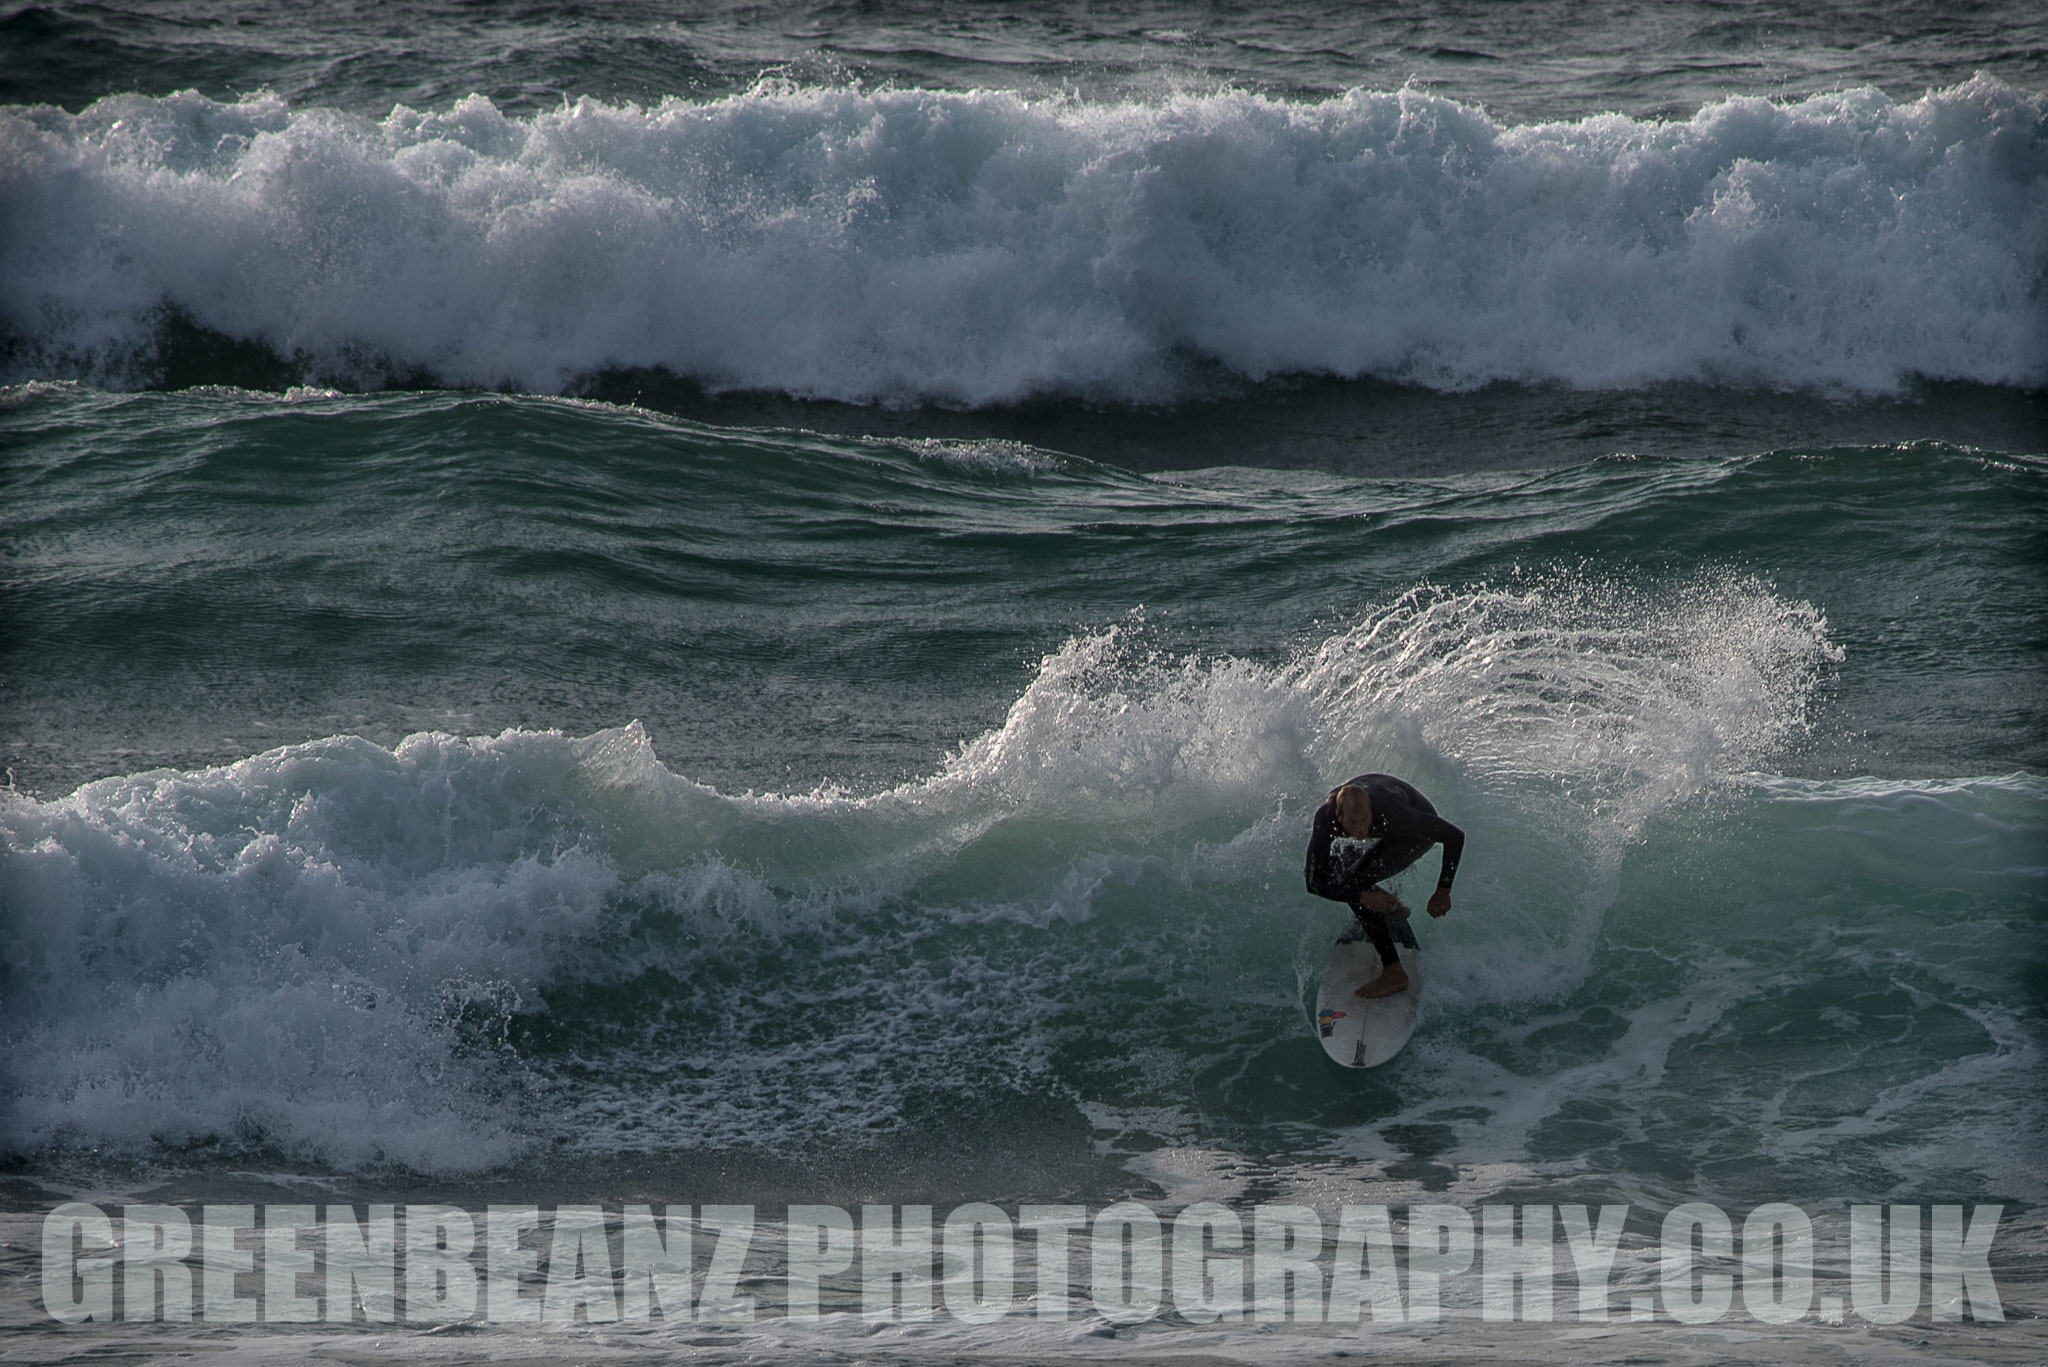 Surfer crouching on board riding a wave off the Cornish coast